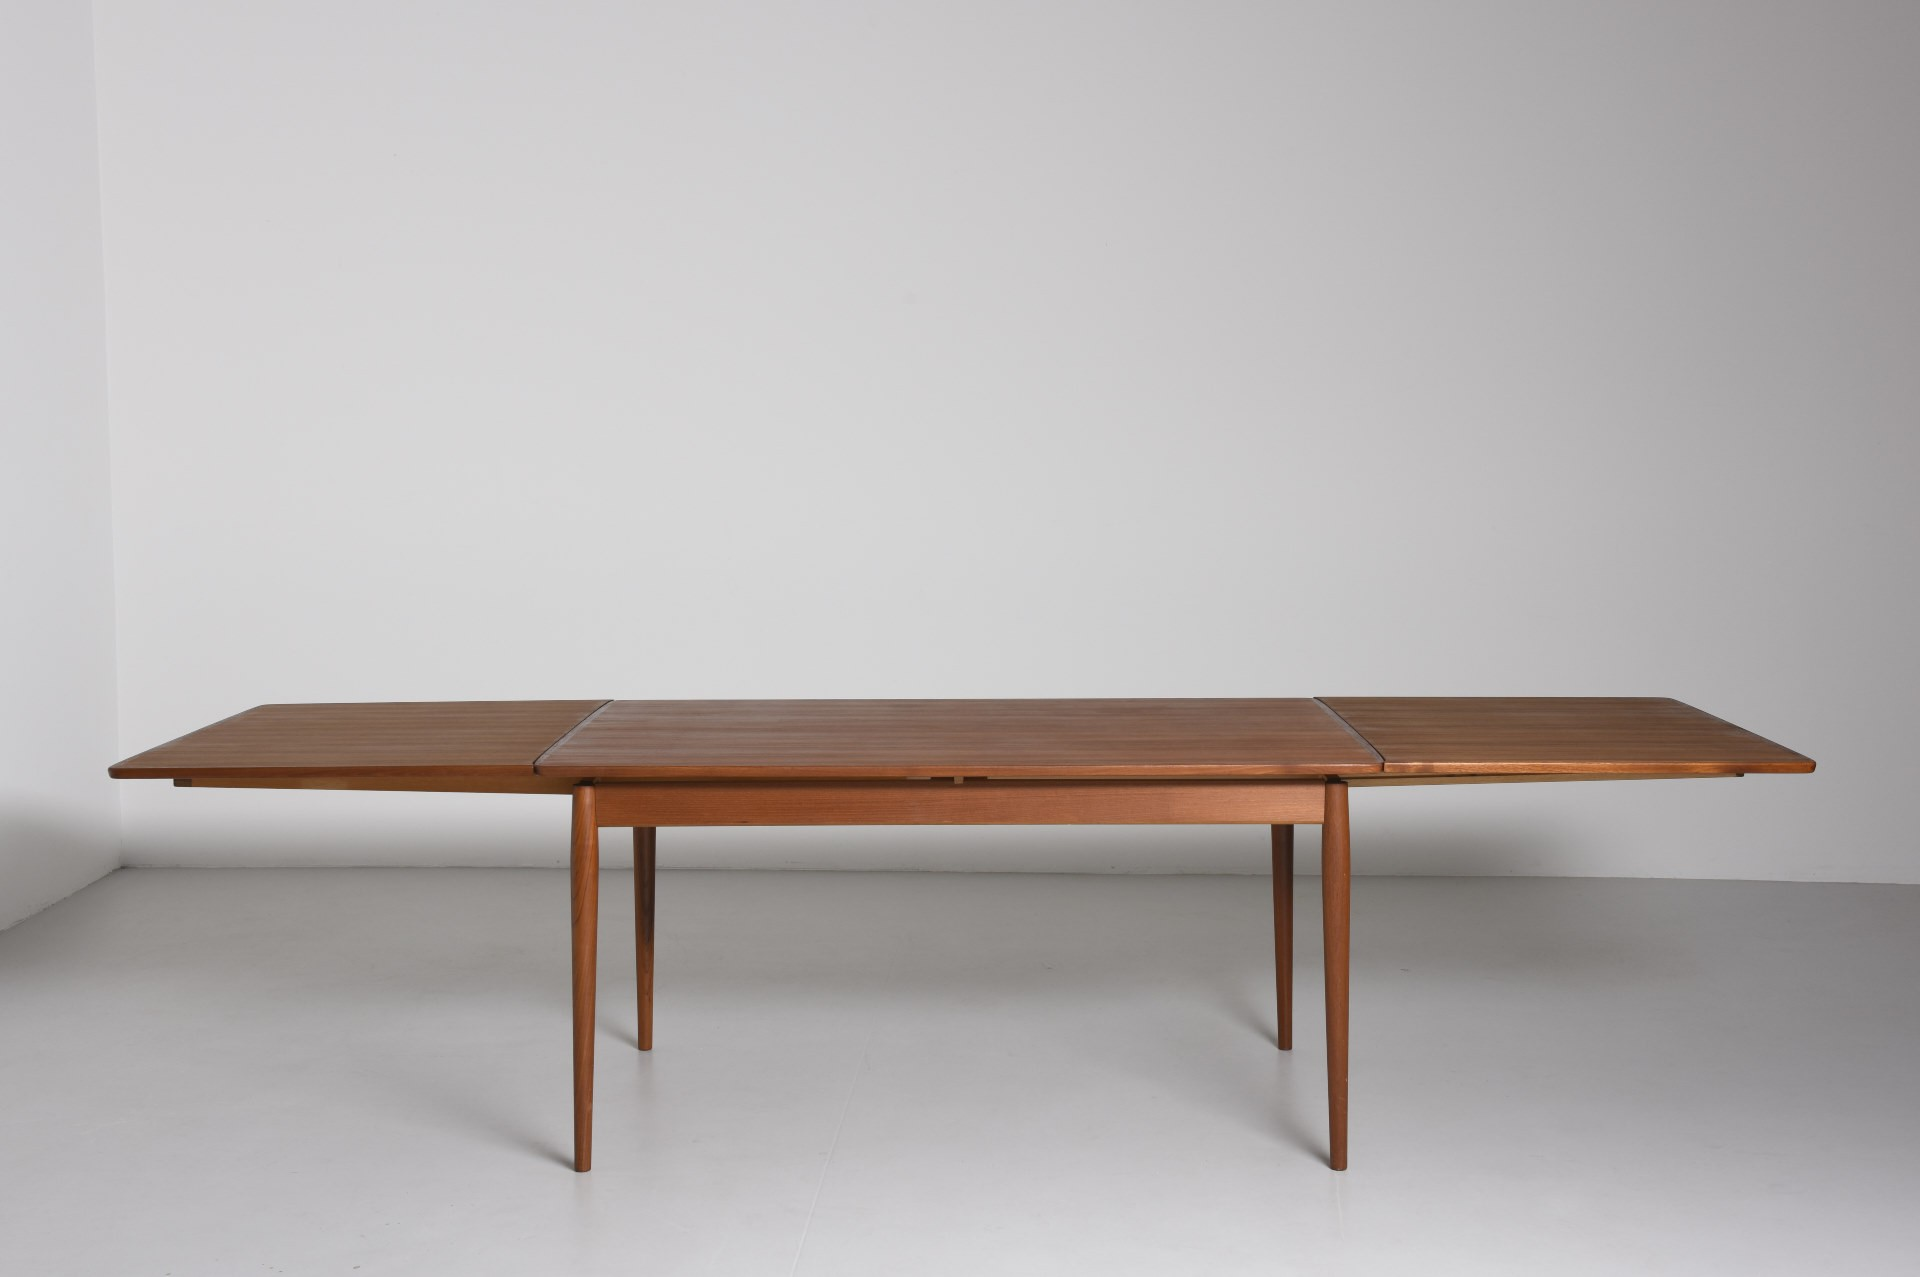 Vintage Teak Dining Table By Arne Vodder For Sibast